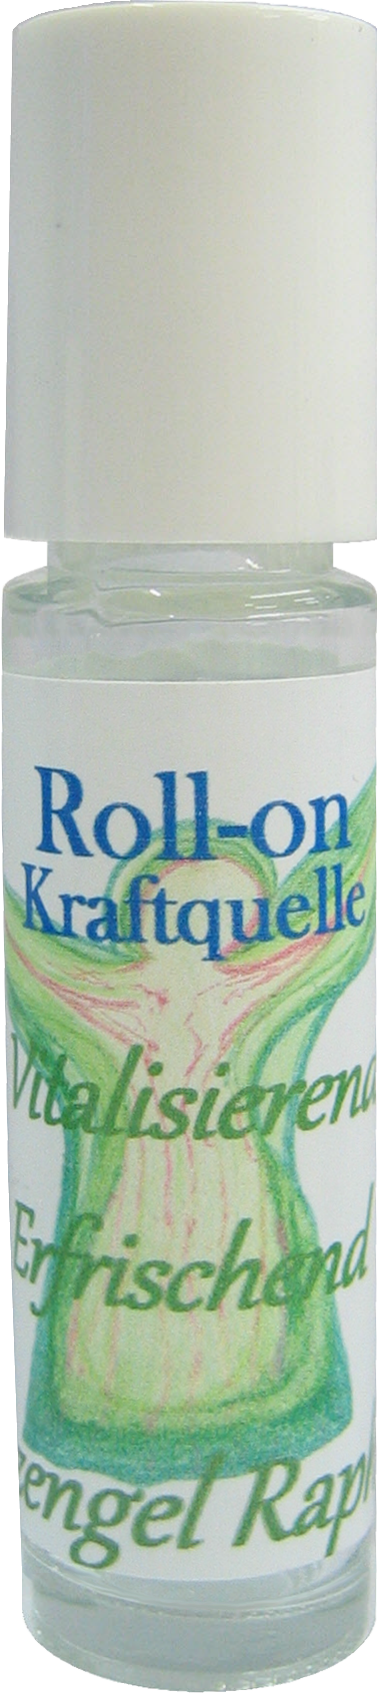 Roll- On Archangelo Jophiele 10ml.